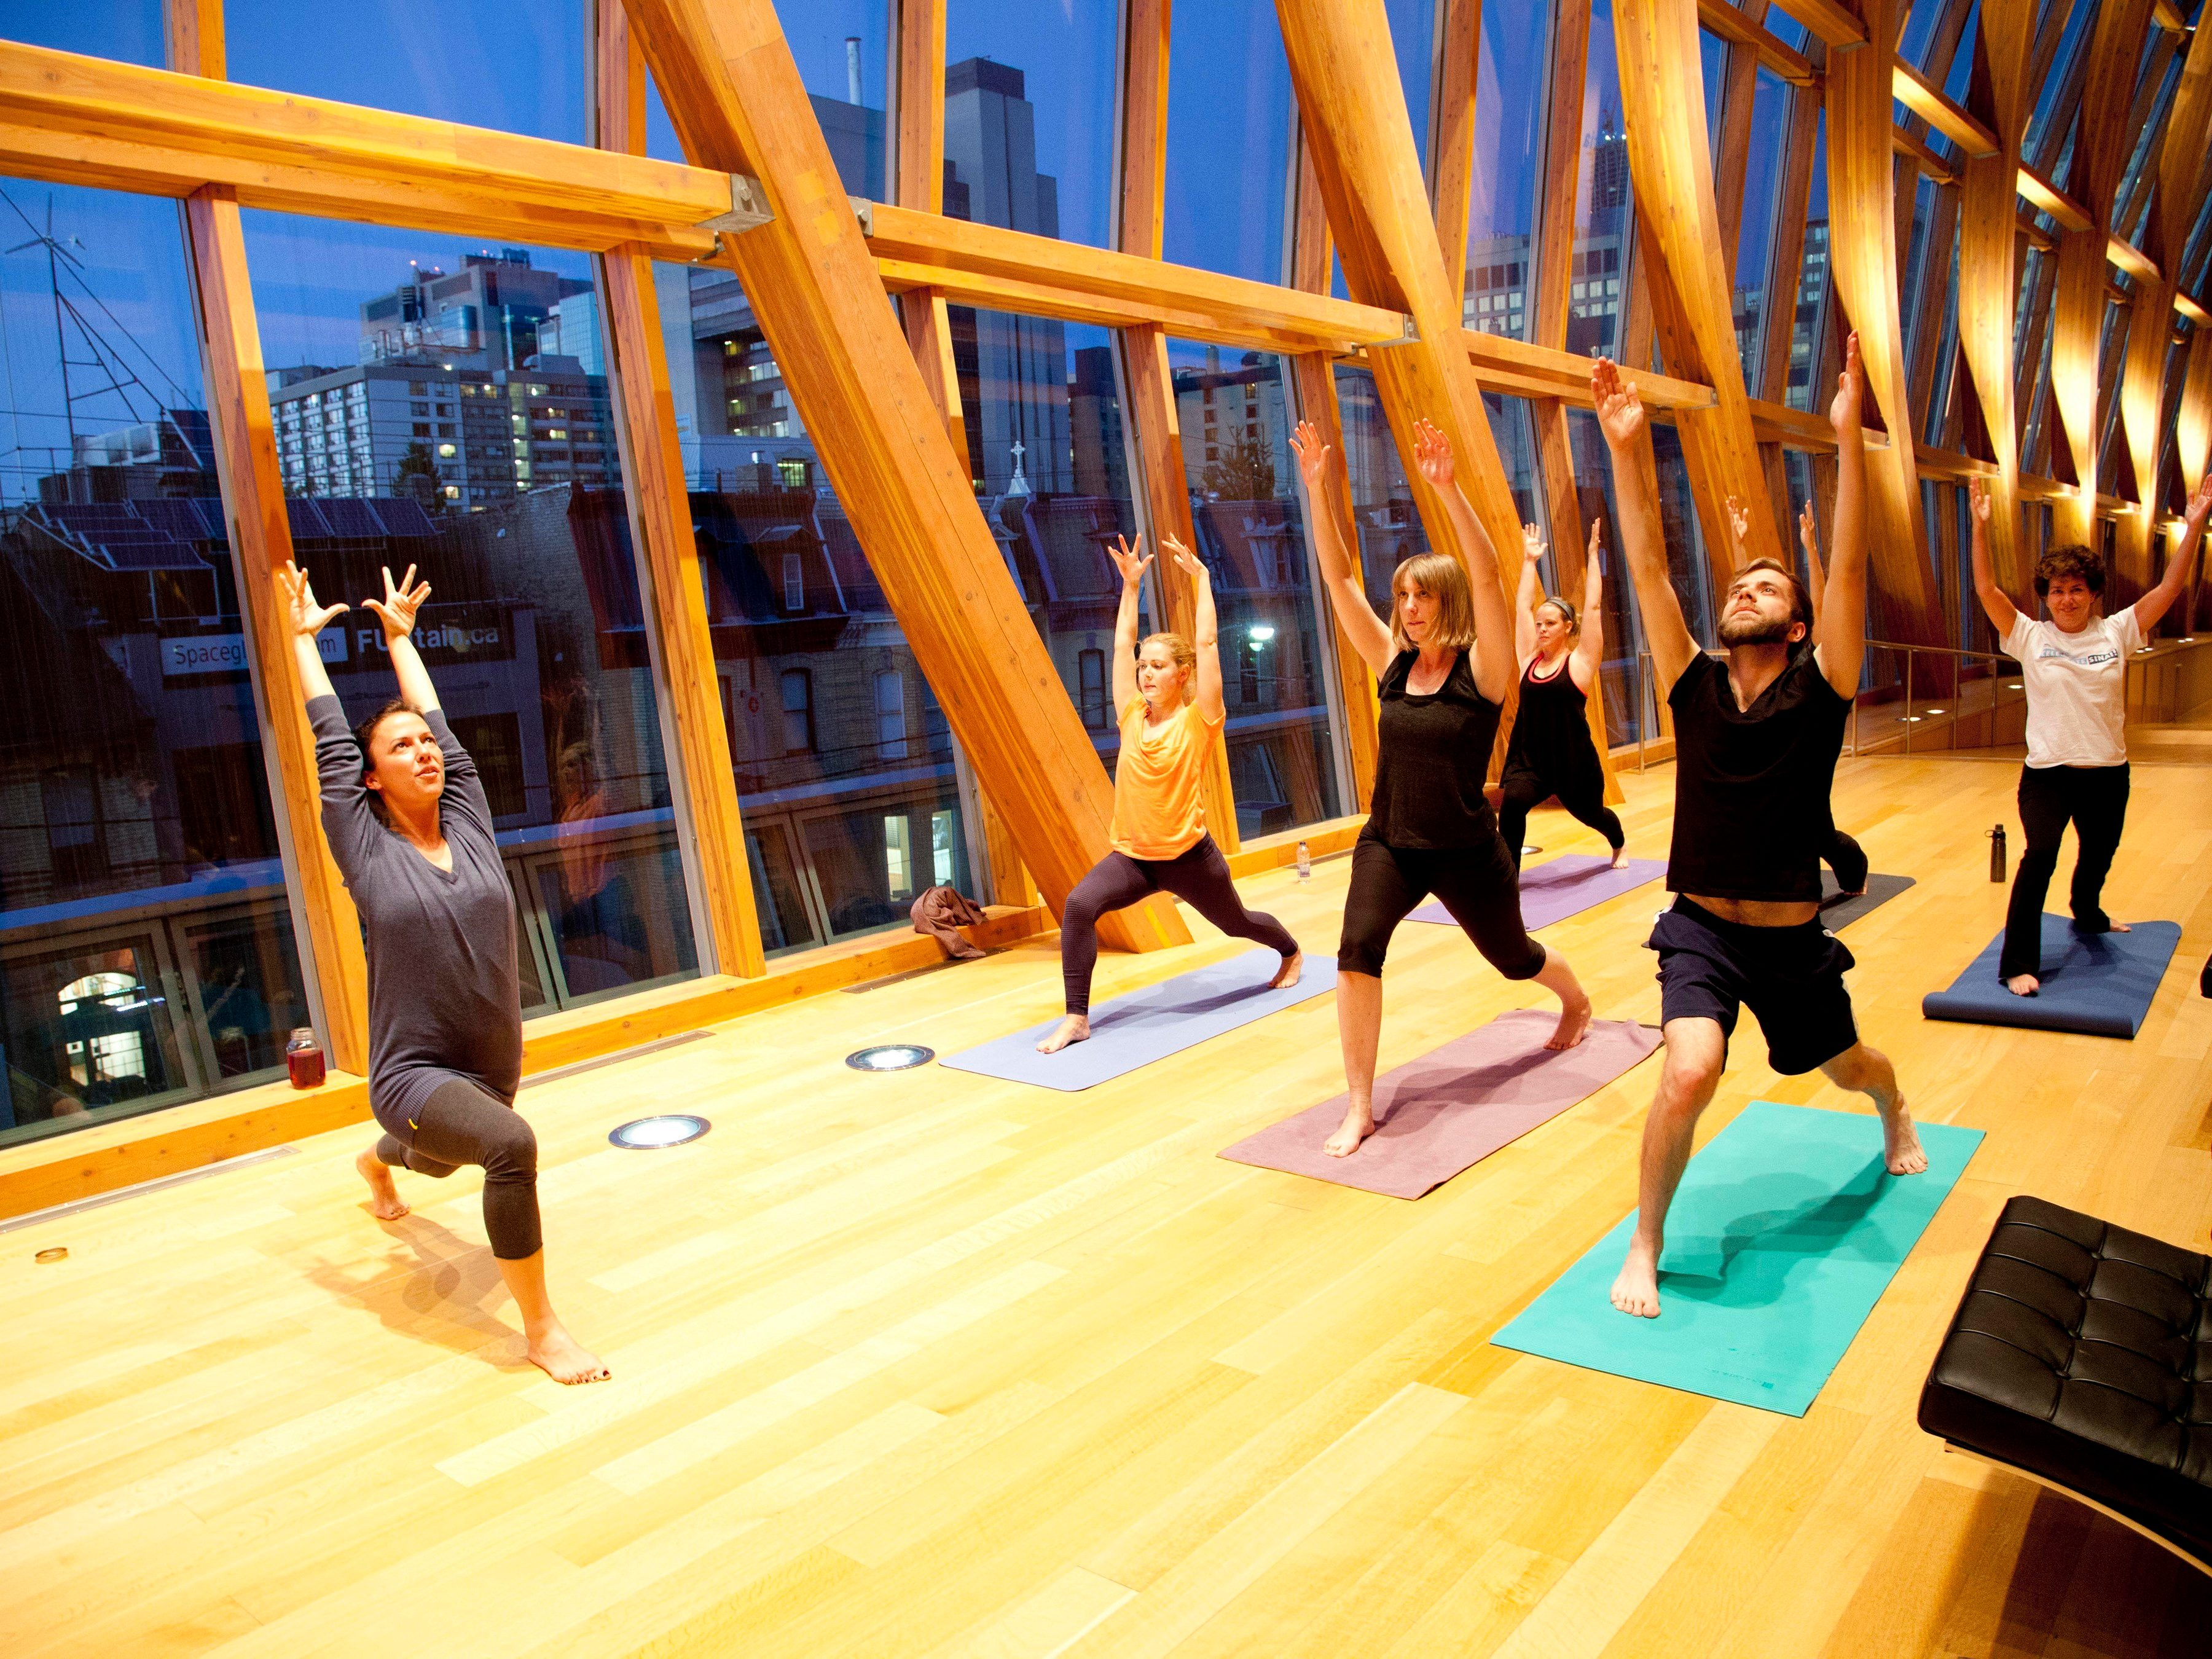 42. Yoga at the AGO